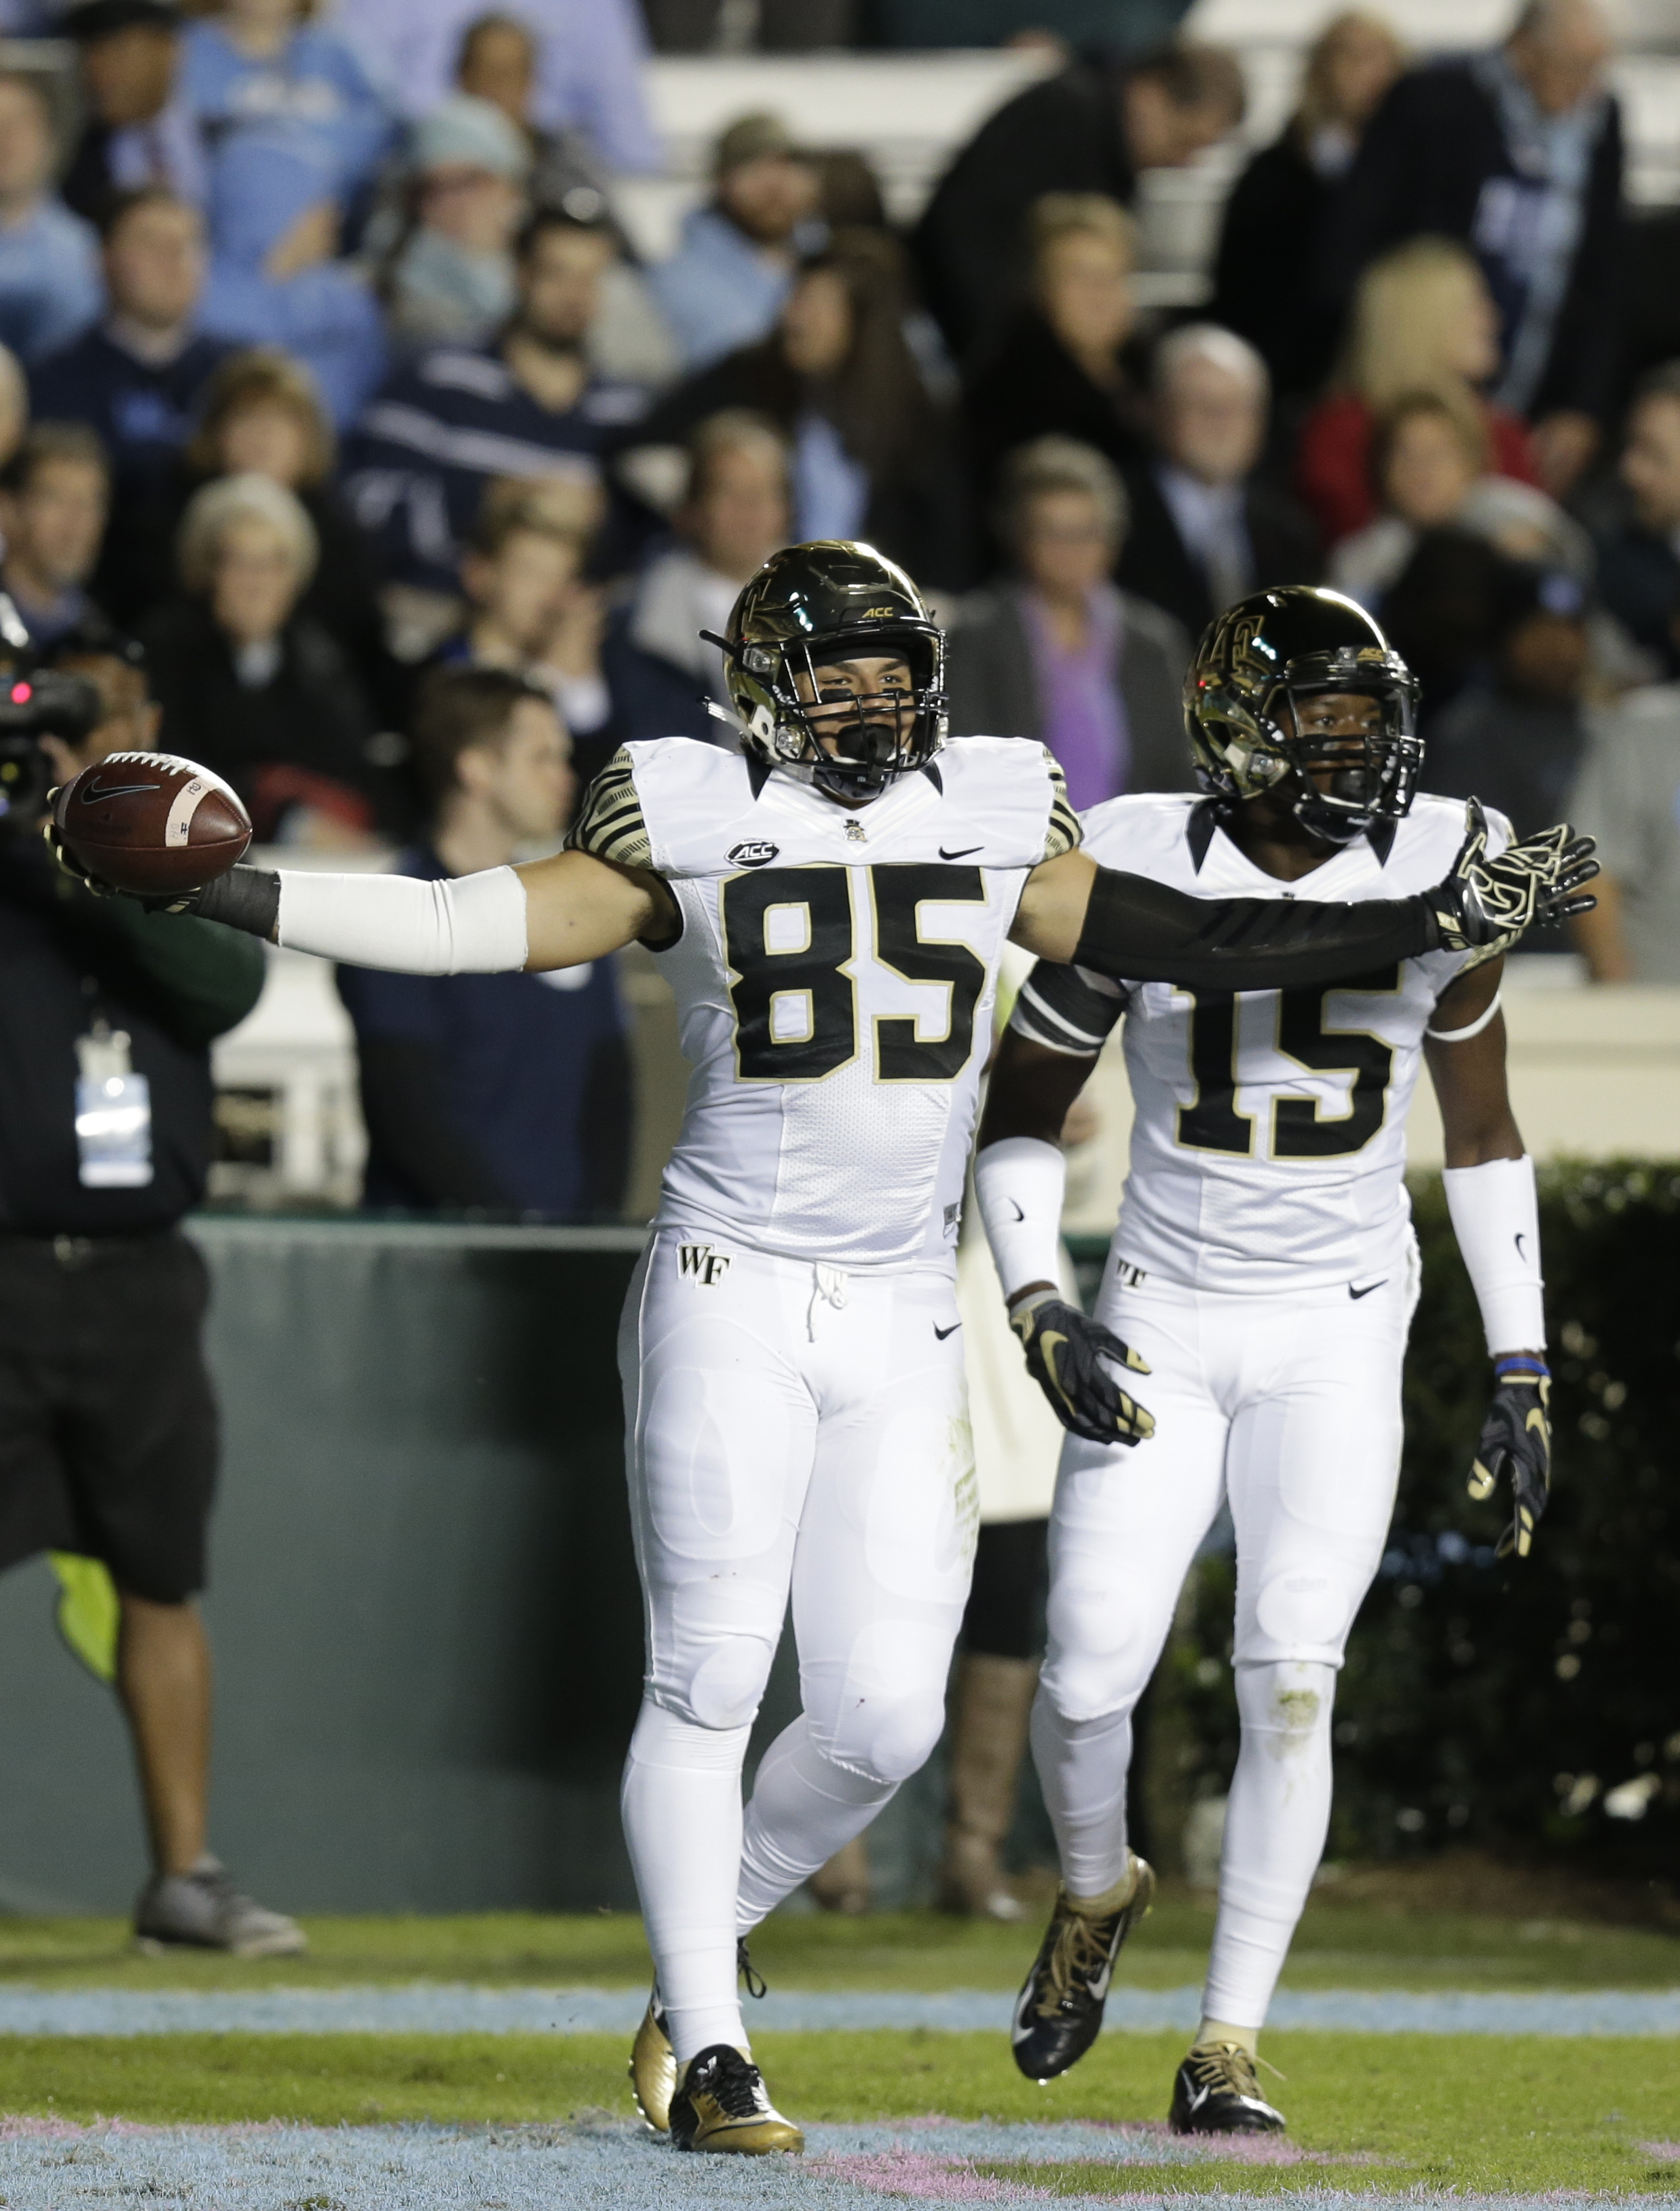 FILE - In this Oct. 17, 2015, file photo, Wake Forest's Cam Serigne (85) celebrates following his touchdown against North Carolina during the first half of an NCAA college football game in Chapel Hill, N.C. Serigne is tired of racking up empty stats at Wa